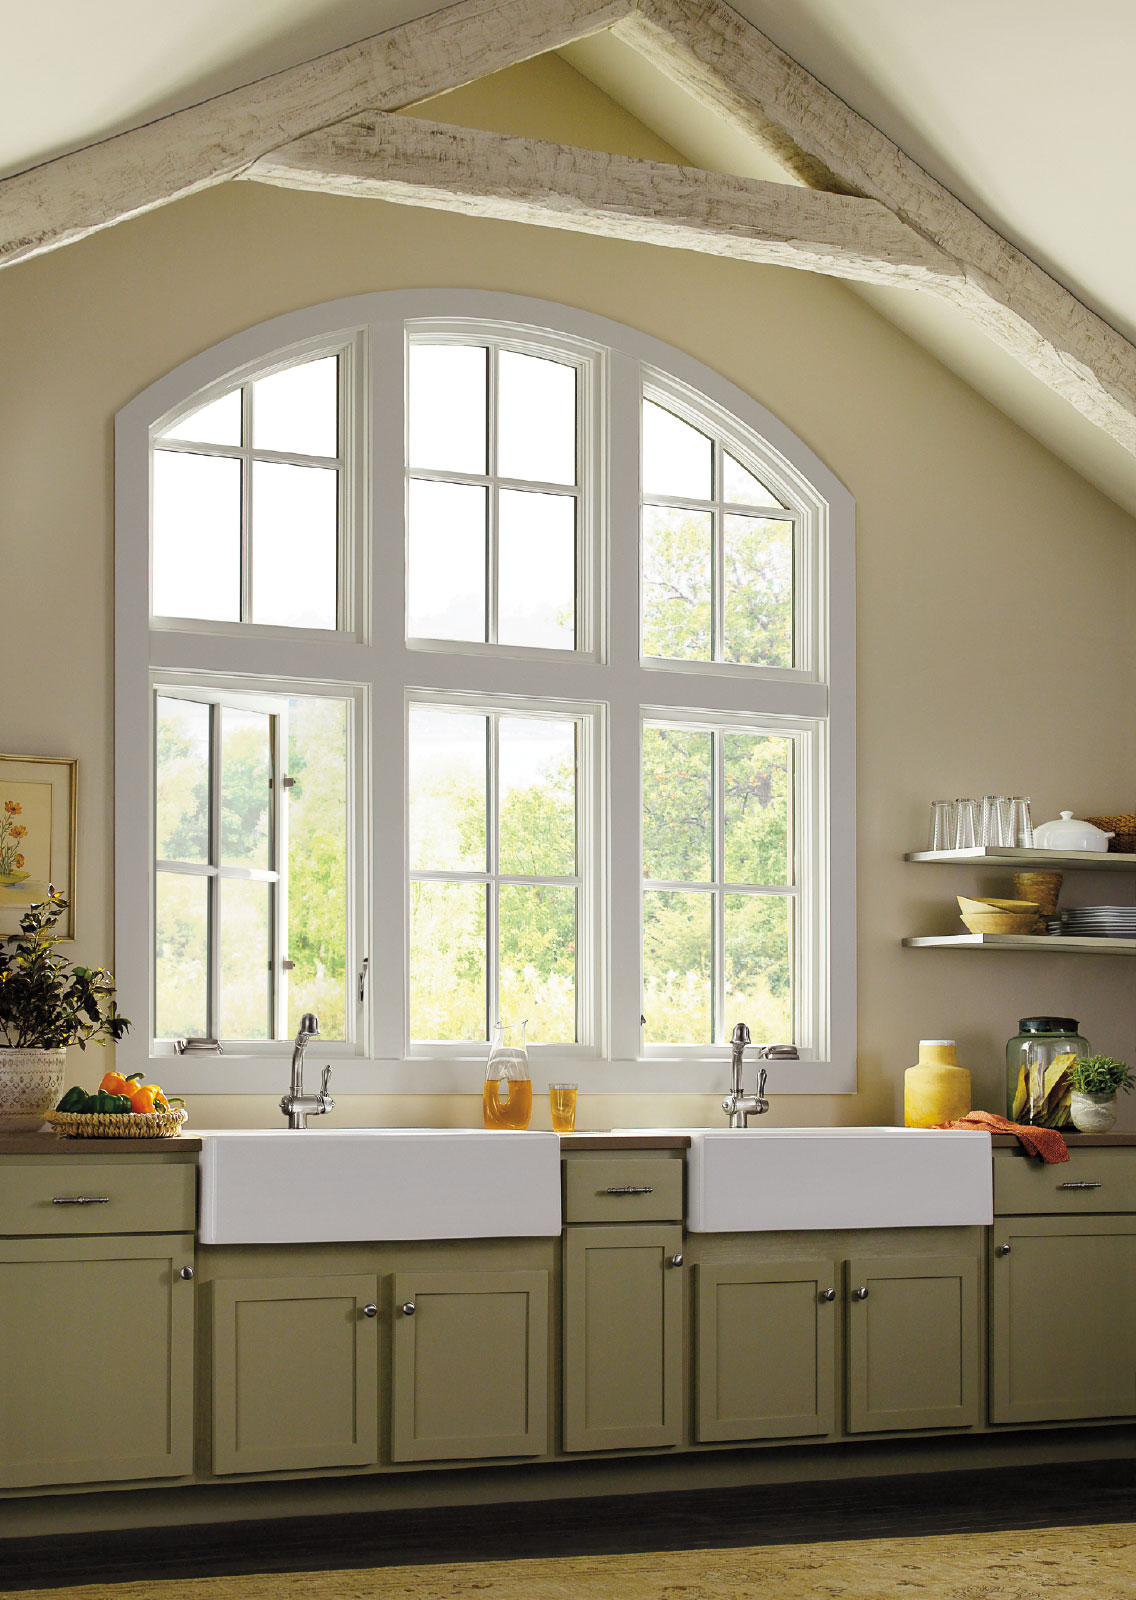 Marvin Casement Windows Farmhouse Sink